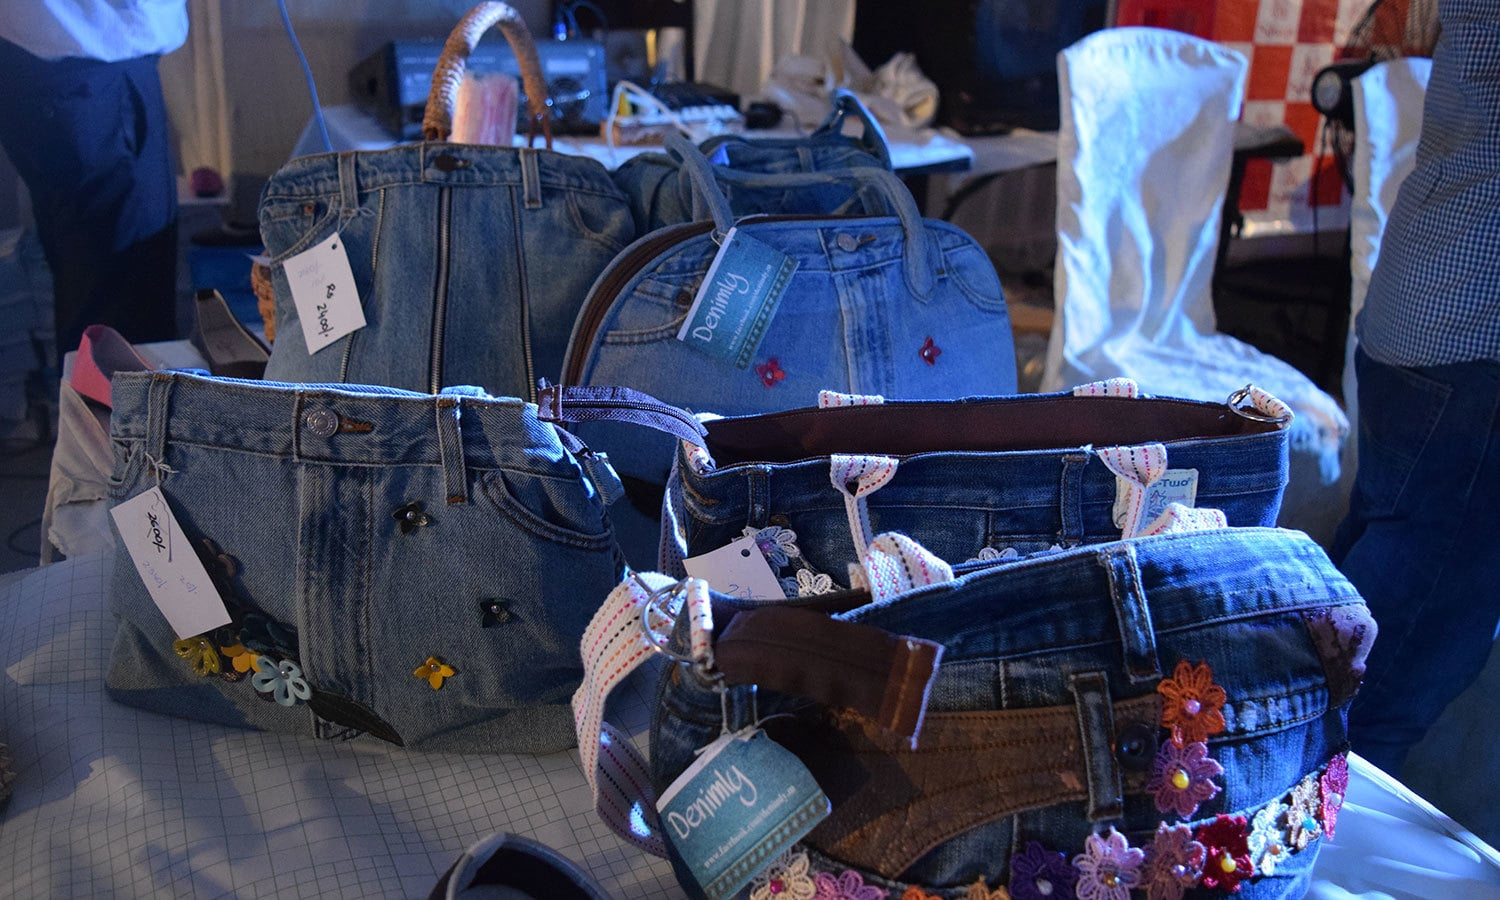 Quirky Jeans bags on display. — Photo by Zoya Anwer